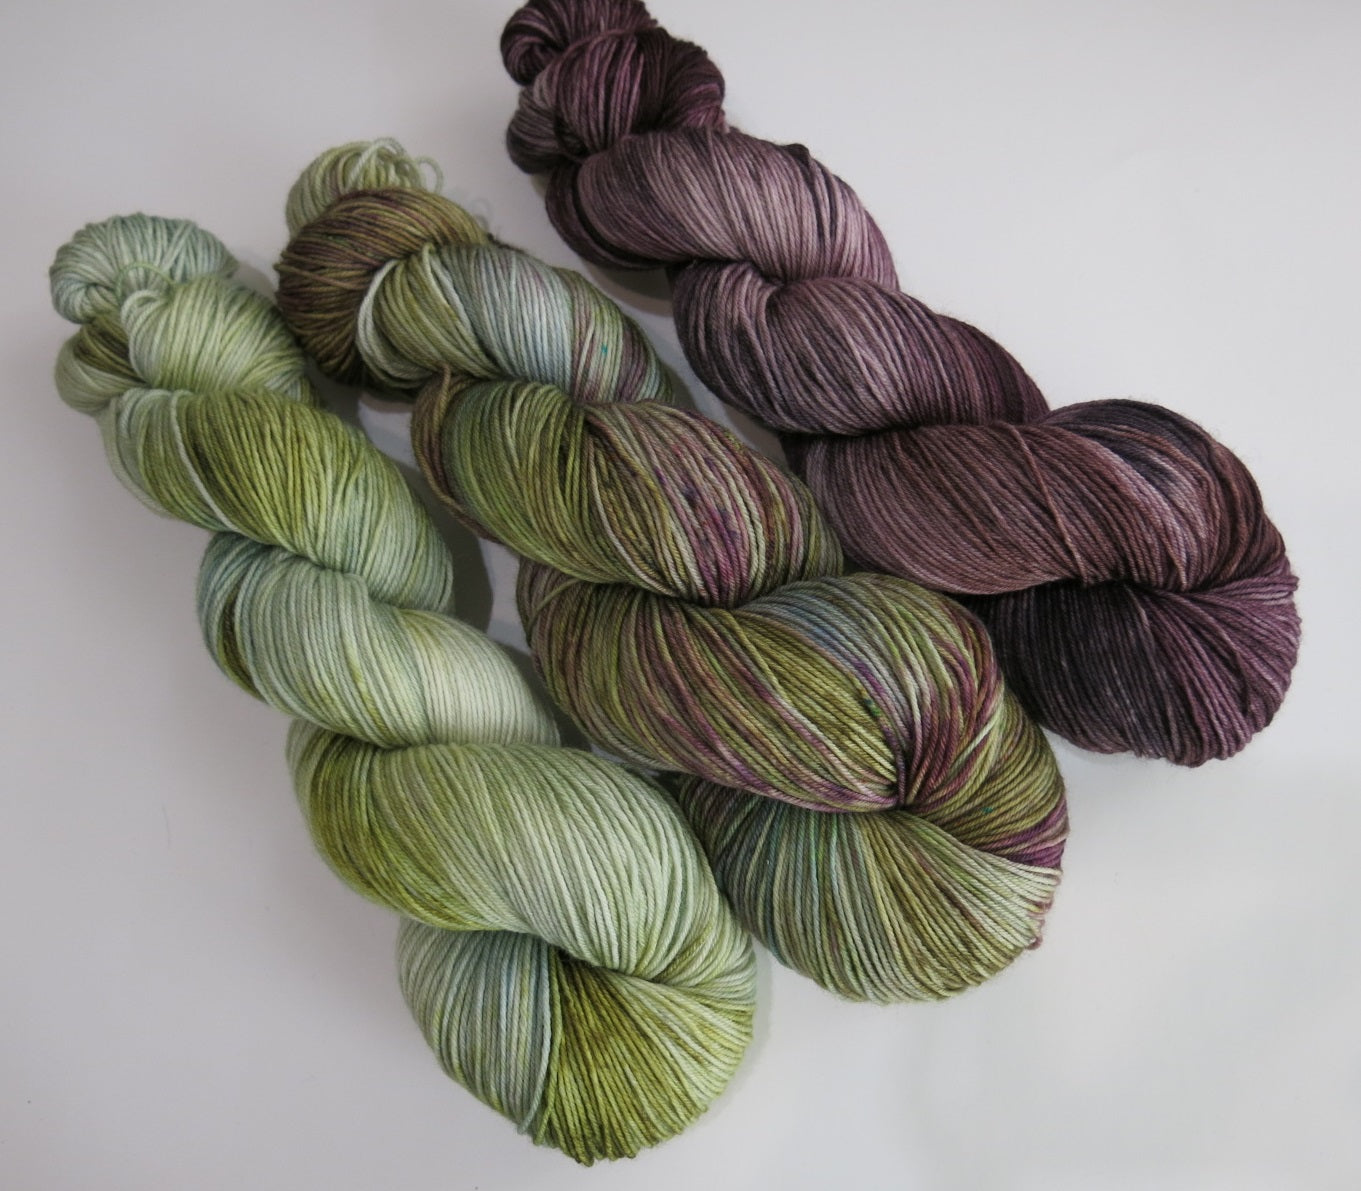 indie dyed three skein yarn combo set for knitting shawls